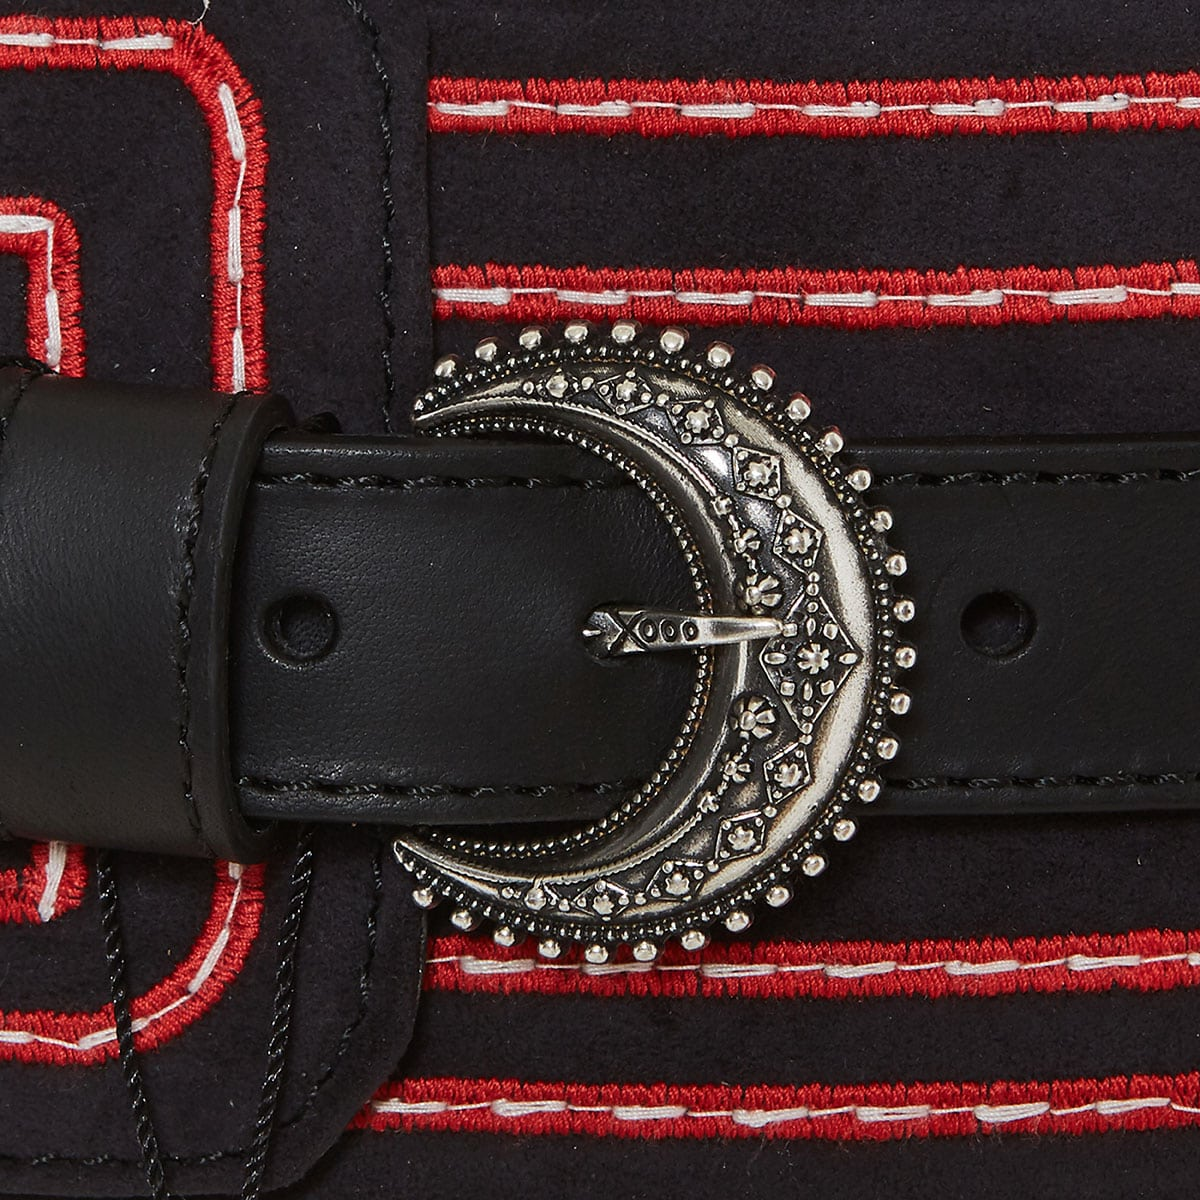 Wide embroidered belt with metal charms